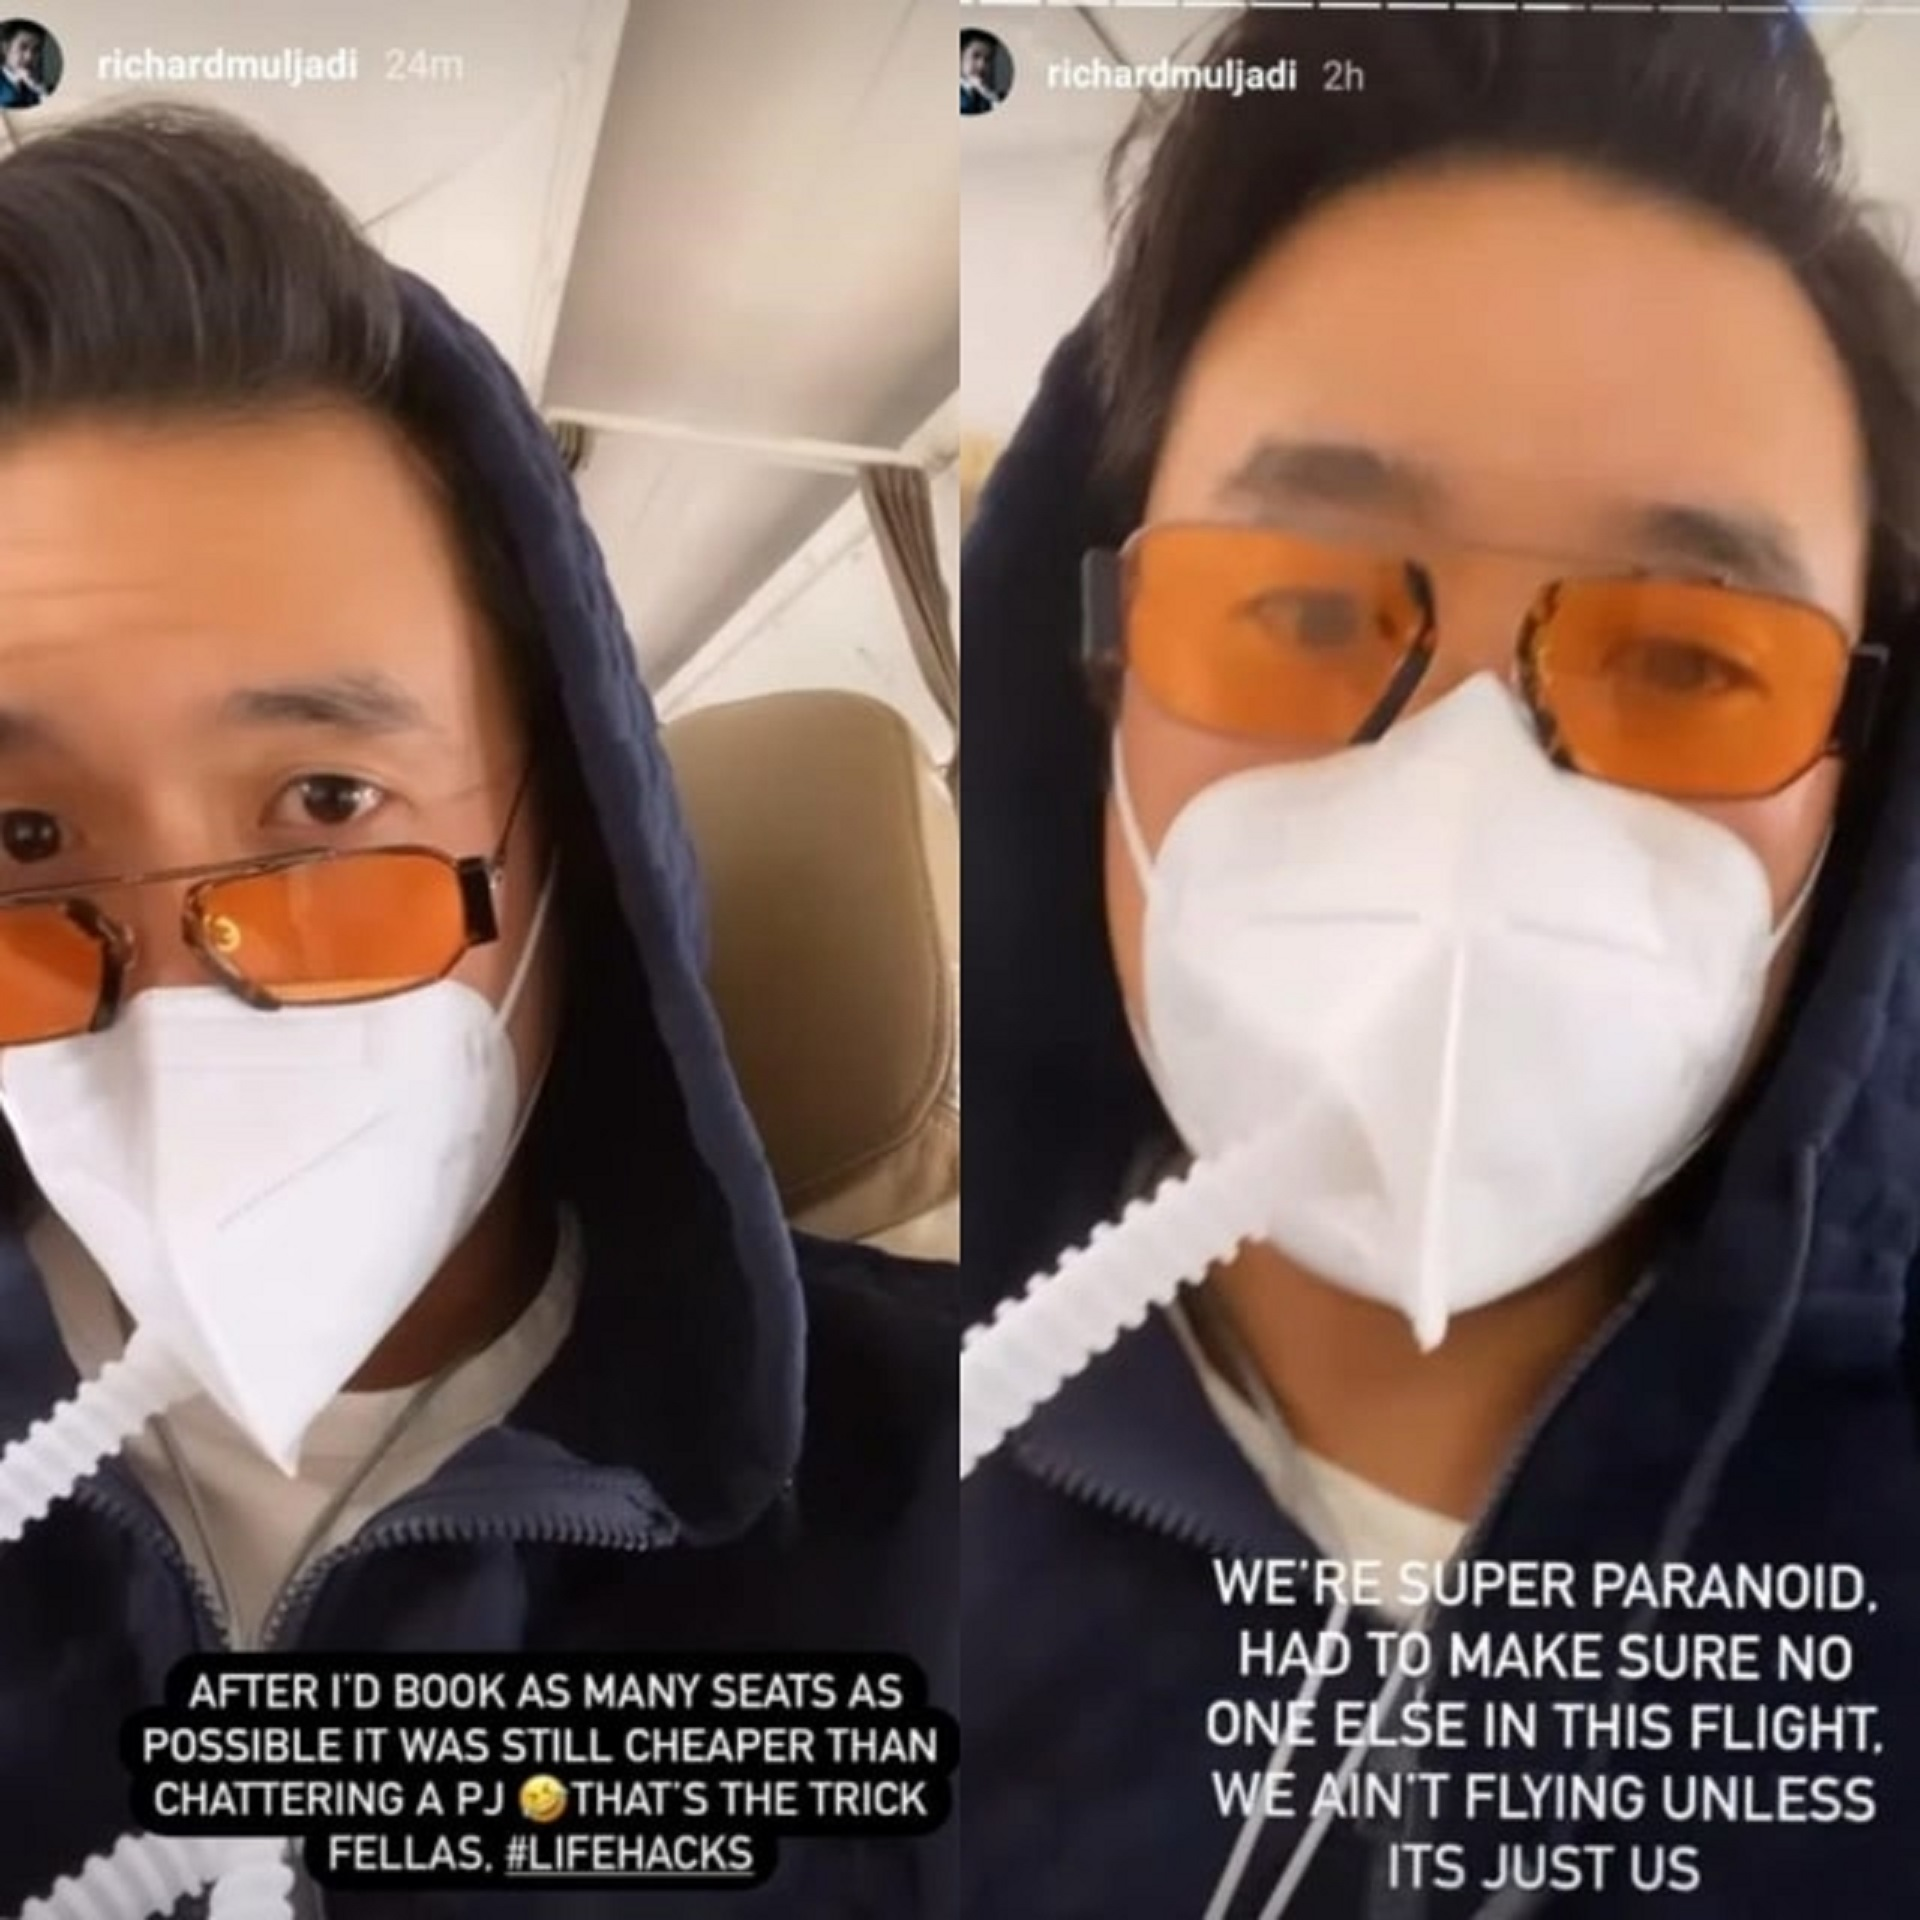 "Idiosyncratic socialite Richard Muljadi booked all seats on Jakarta-Bali flight because ""we ain't flying unless it's just us""."